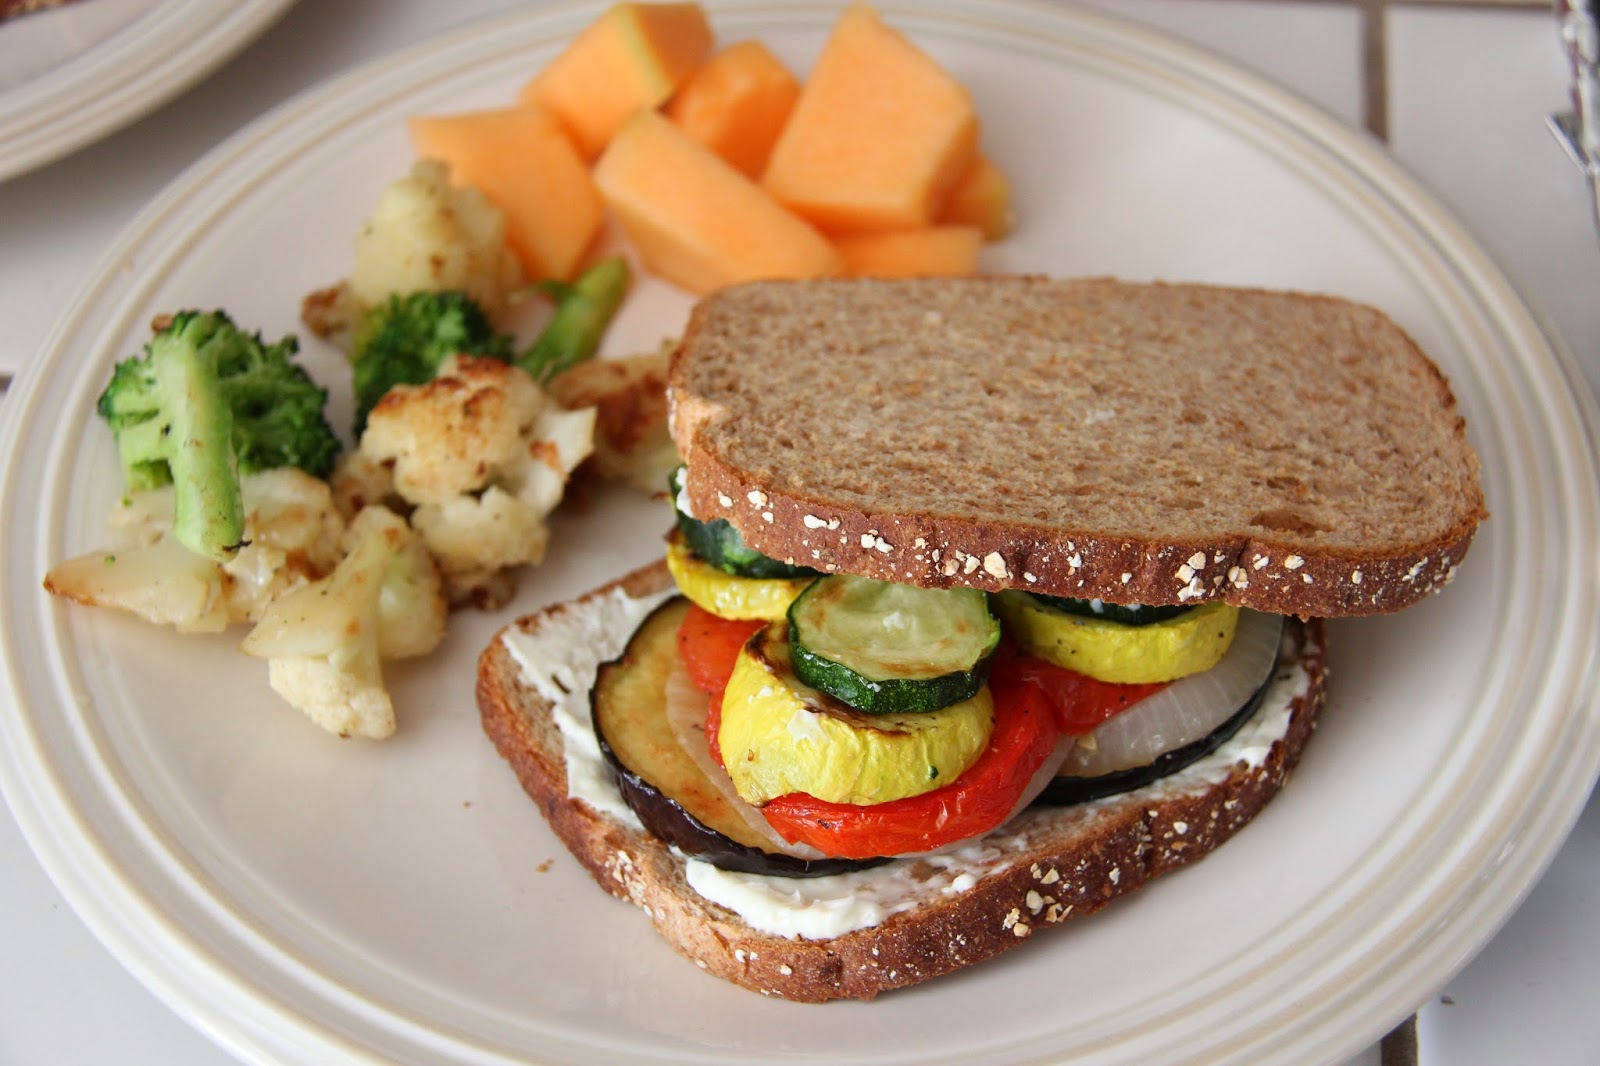 grilled veggie sandwich with garlic spread